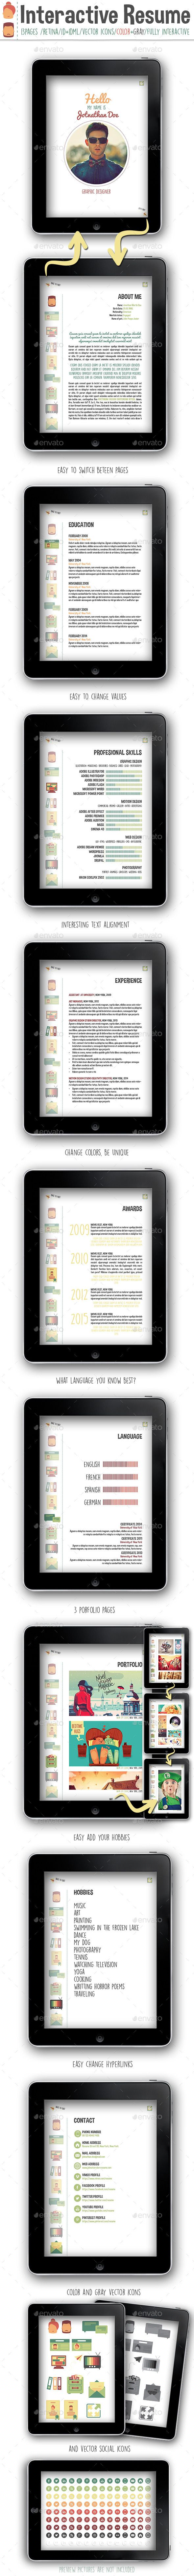 Interactive Resume PDF | Graphics, Adobe and Template